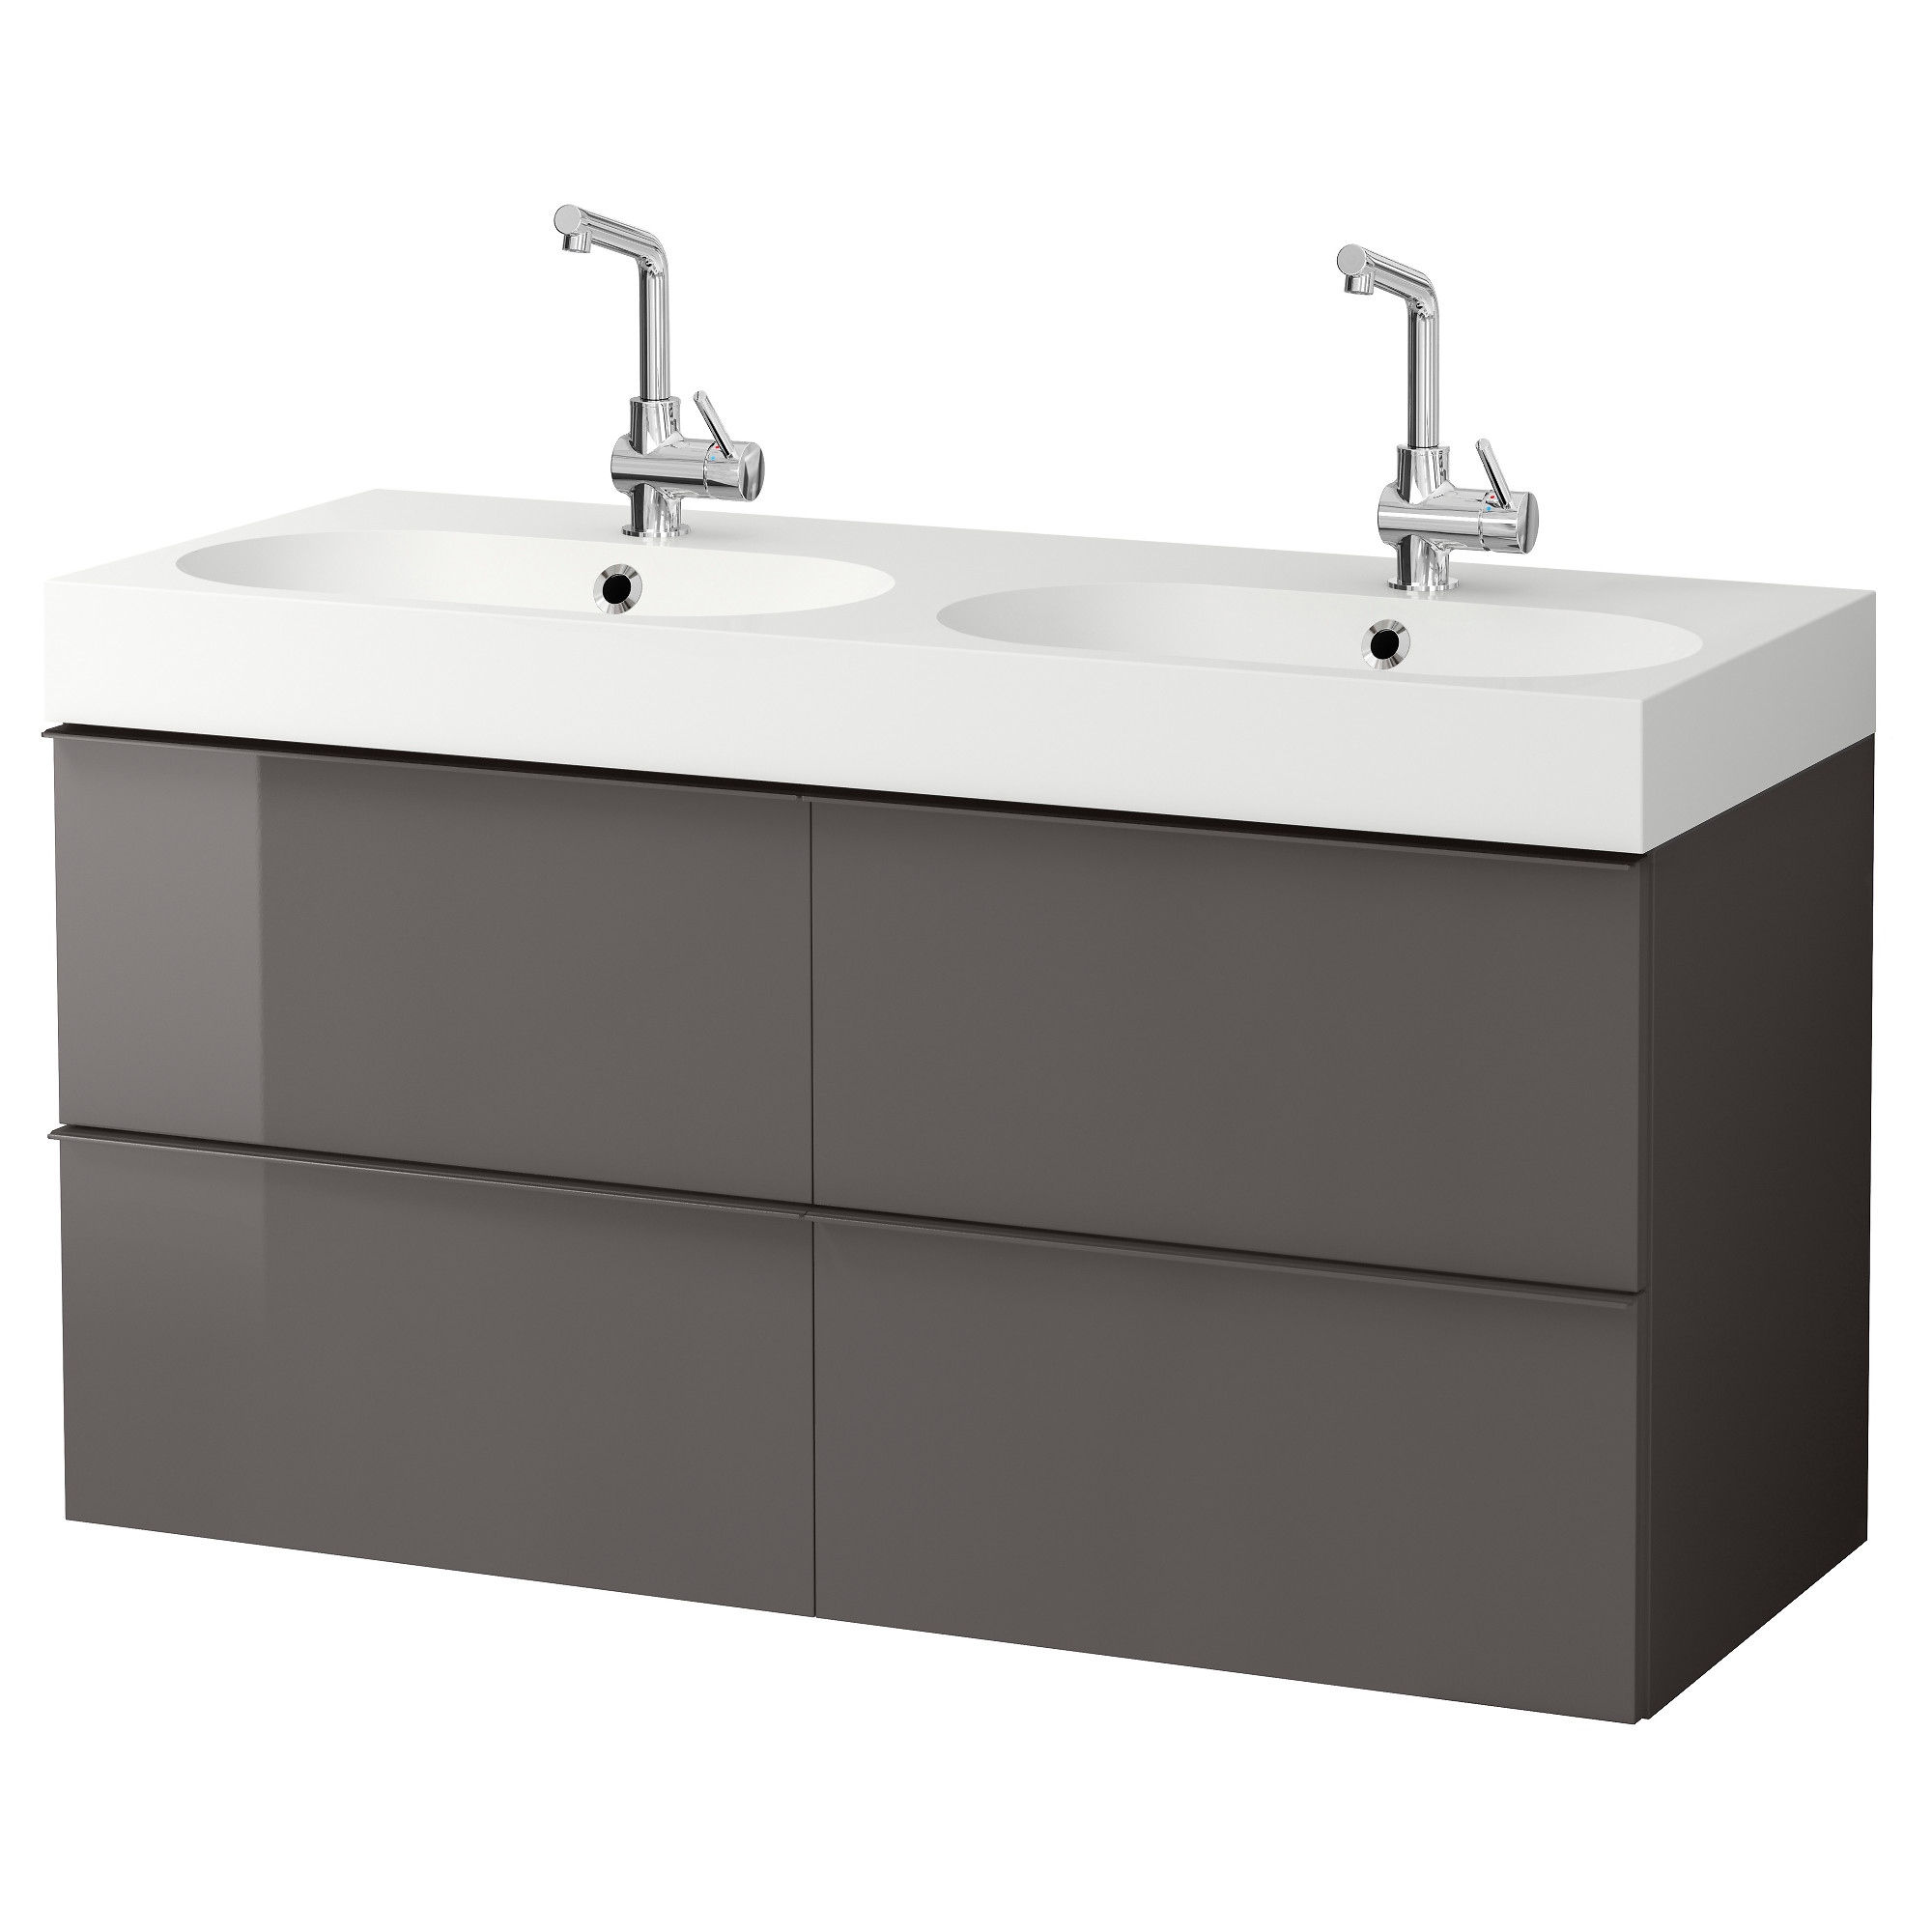 Bathroom sink dimensions mm - Godmorgon Br Viken Sink Cabinet With 4 Drawers High Gloss Gray Width 48